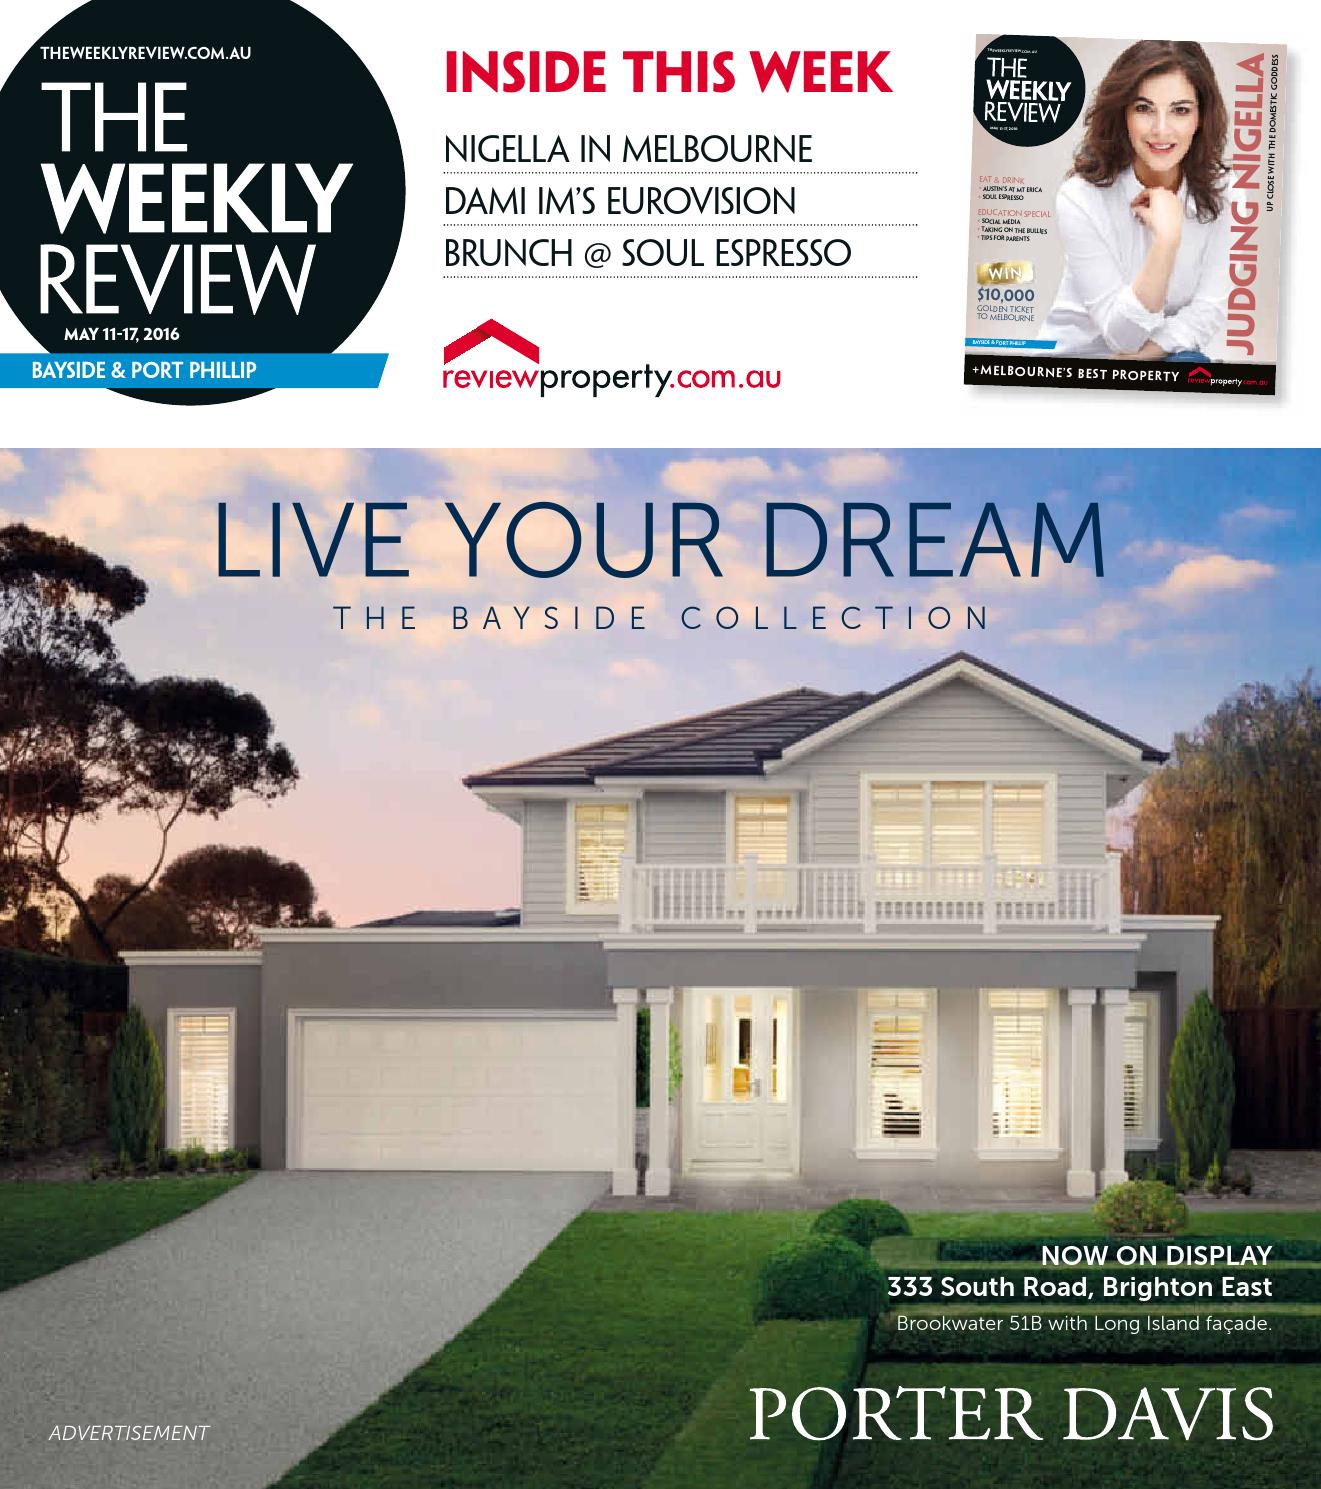 cc designer homes pty ltd bulleen vic designer houses The Weekly Review Bayside by The Weekly Review - issuu